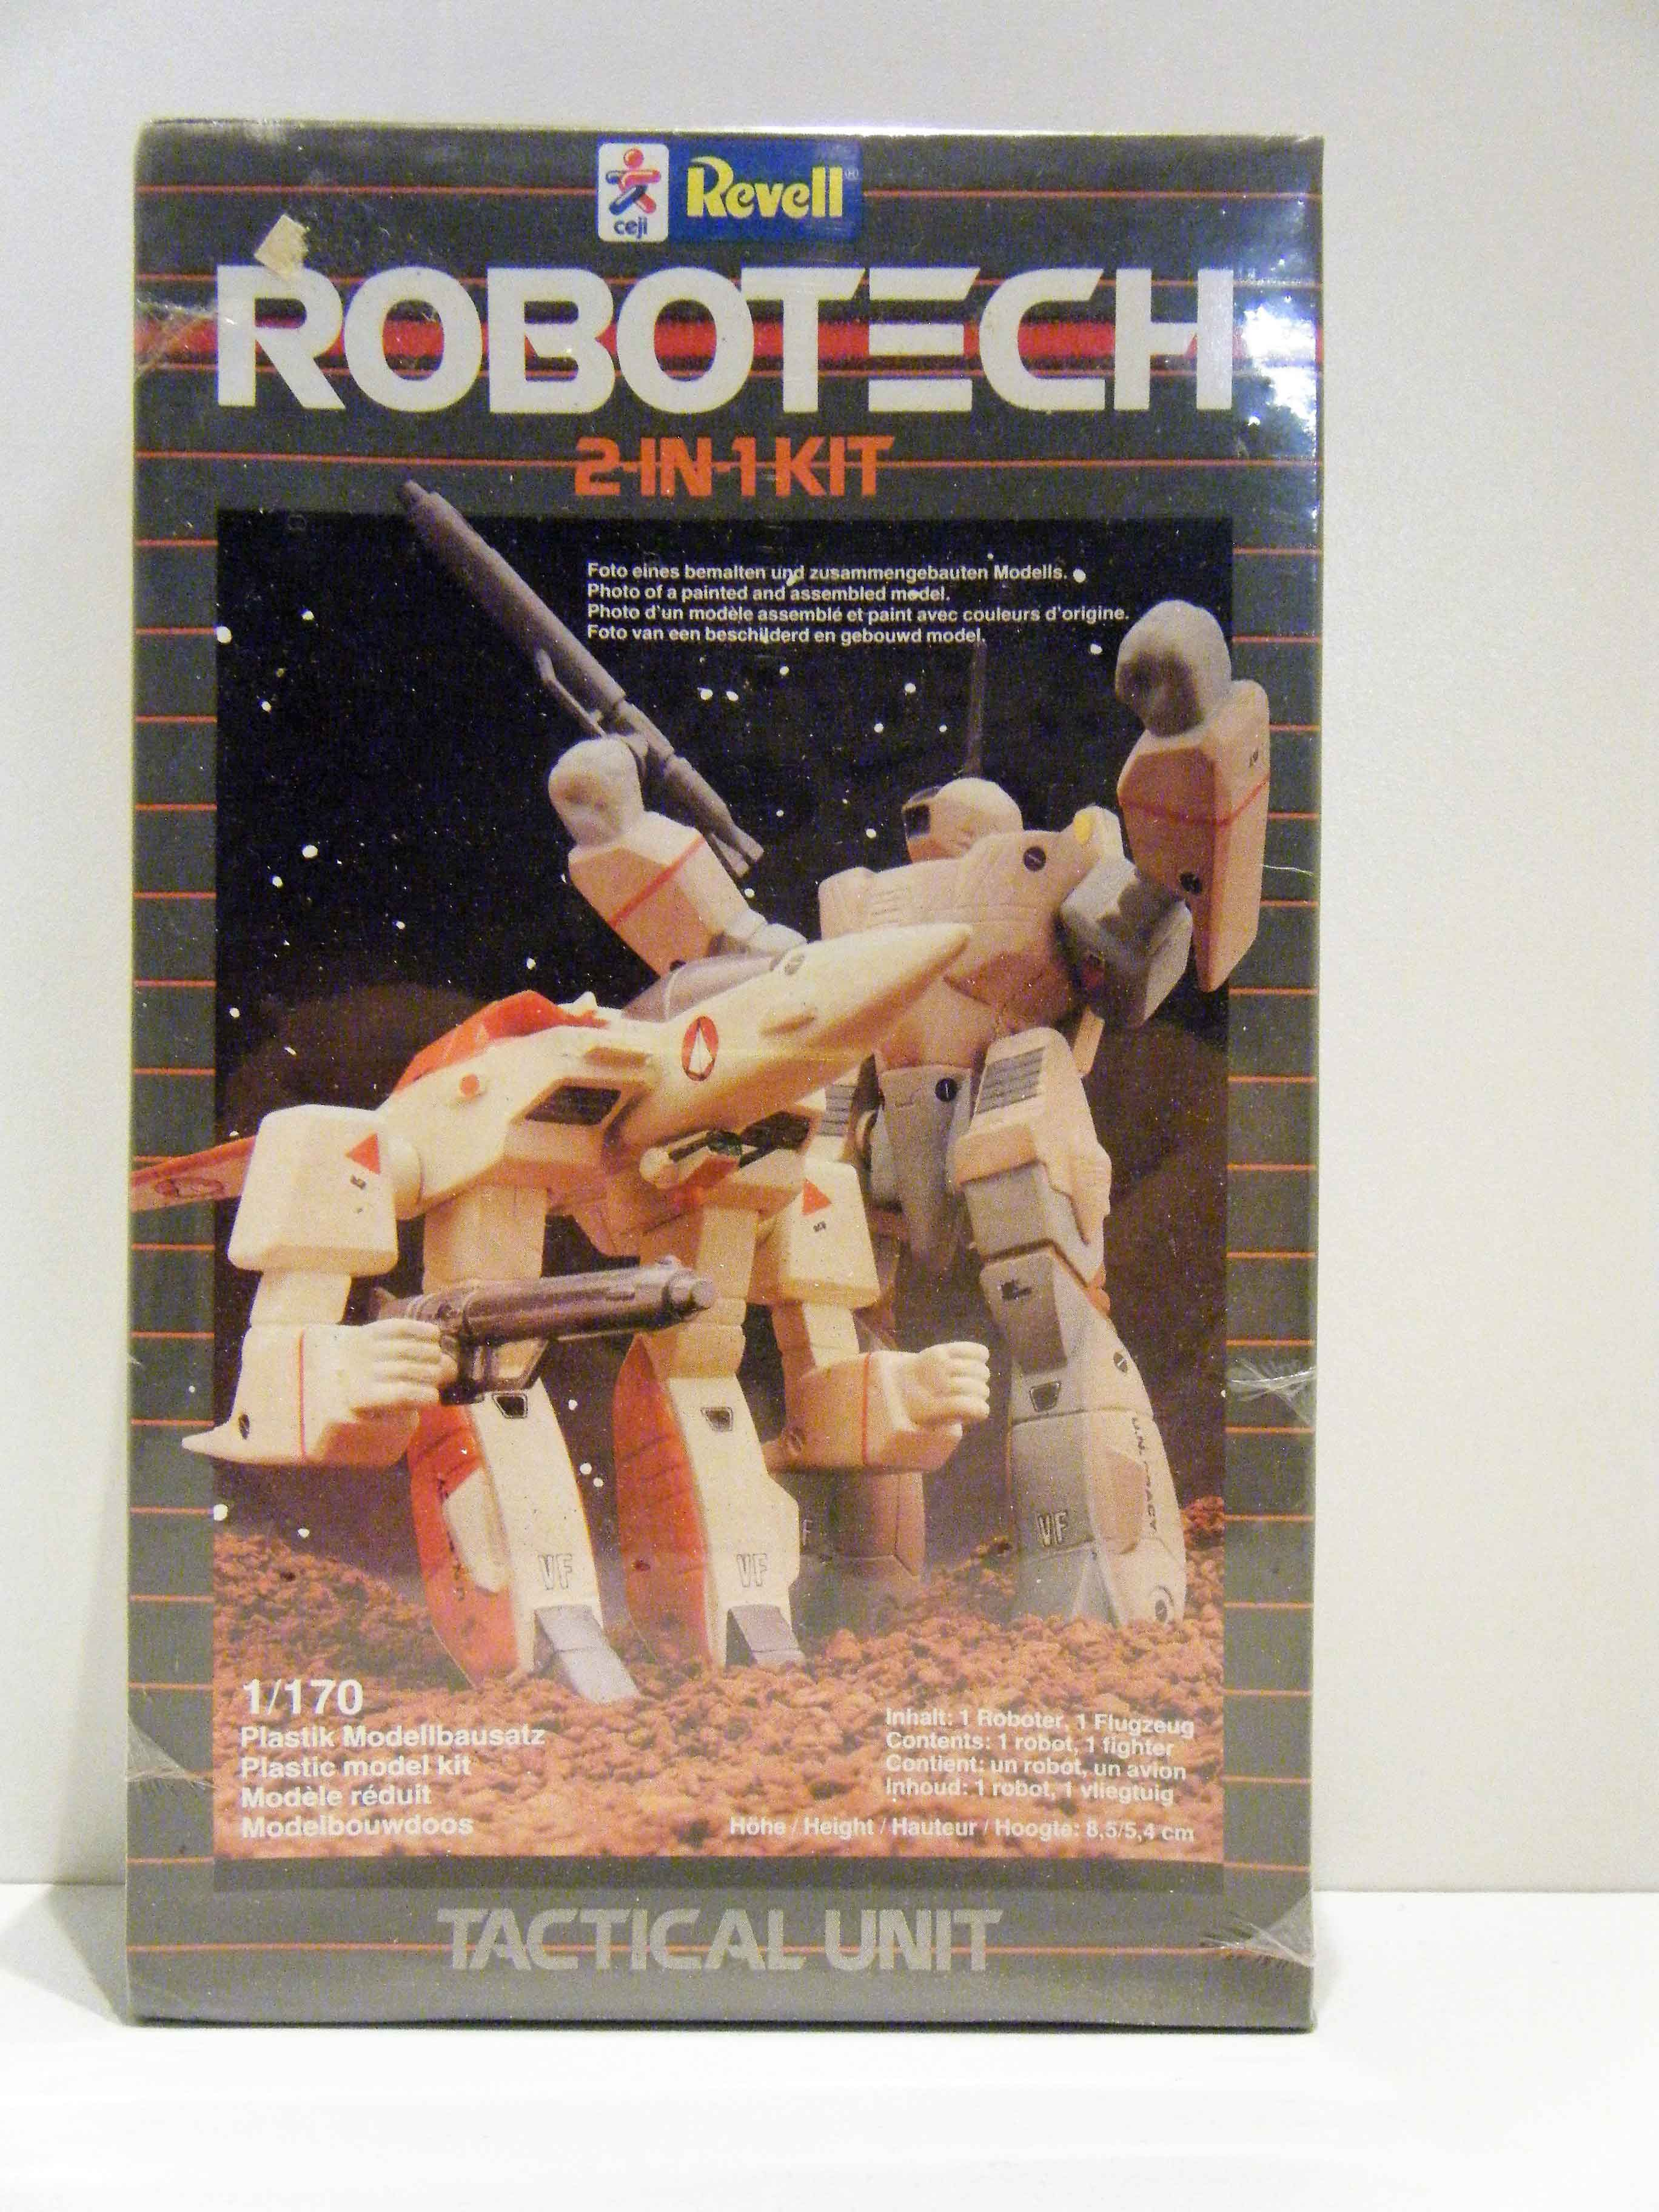 Revell 1984 Robotech 2 In 1 Kit 1136 Tactical Unit Mib 1170 Scale